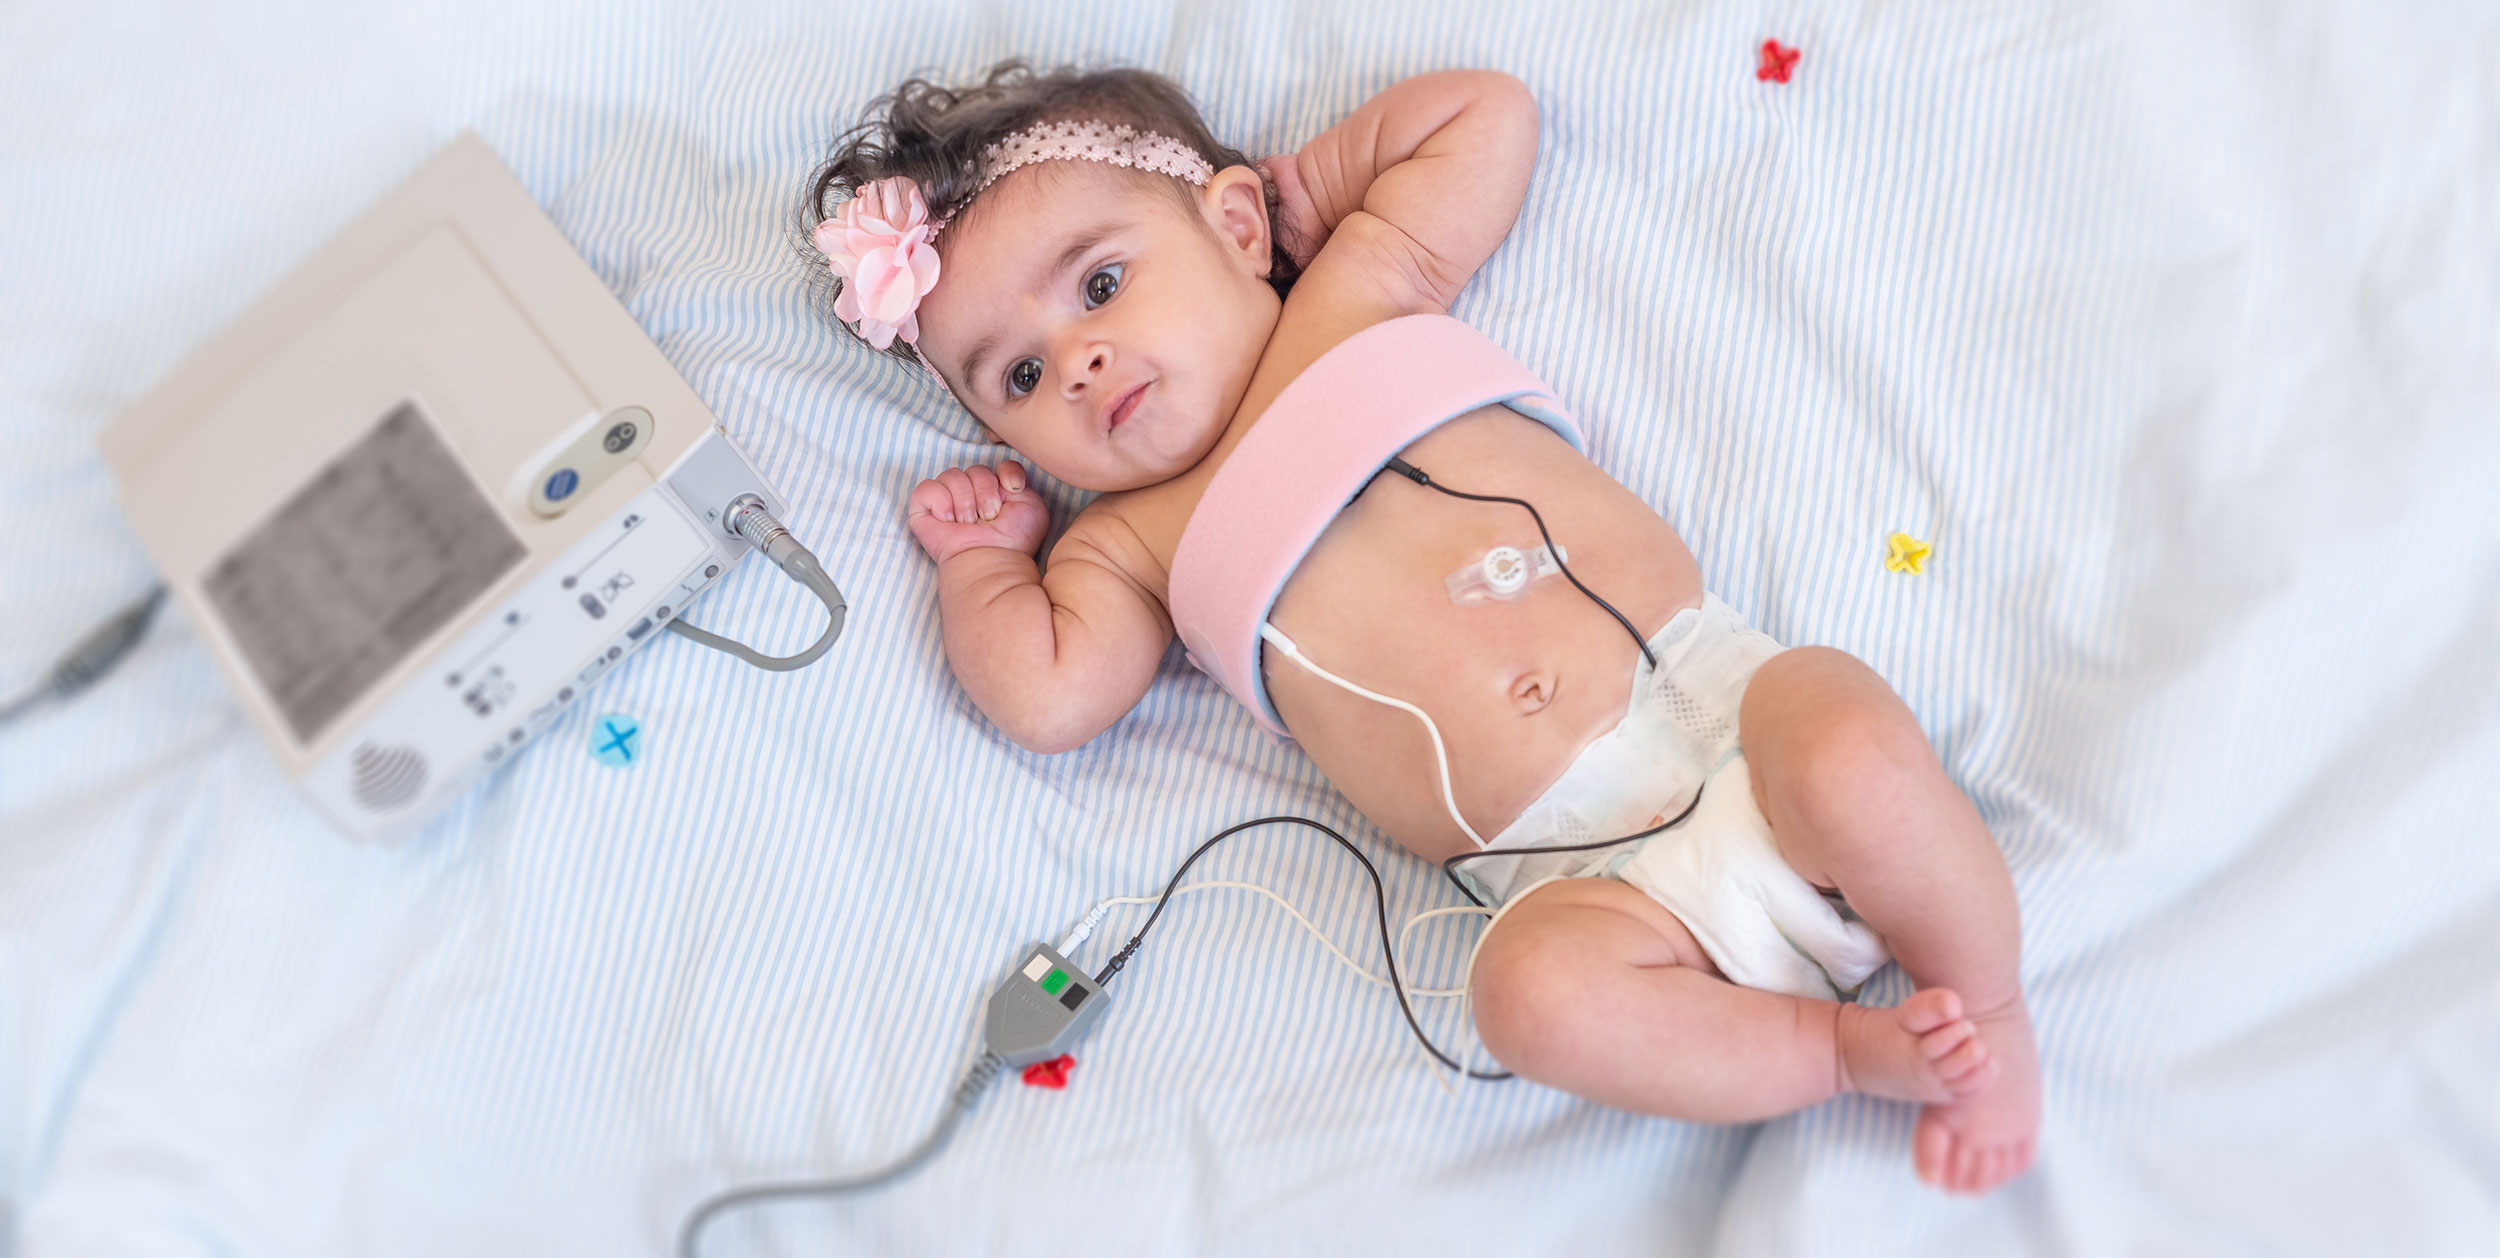 Infant Using Durable Medical Equipment